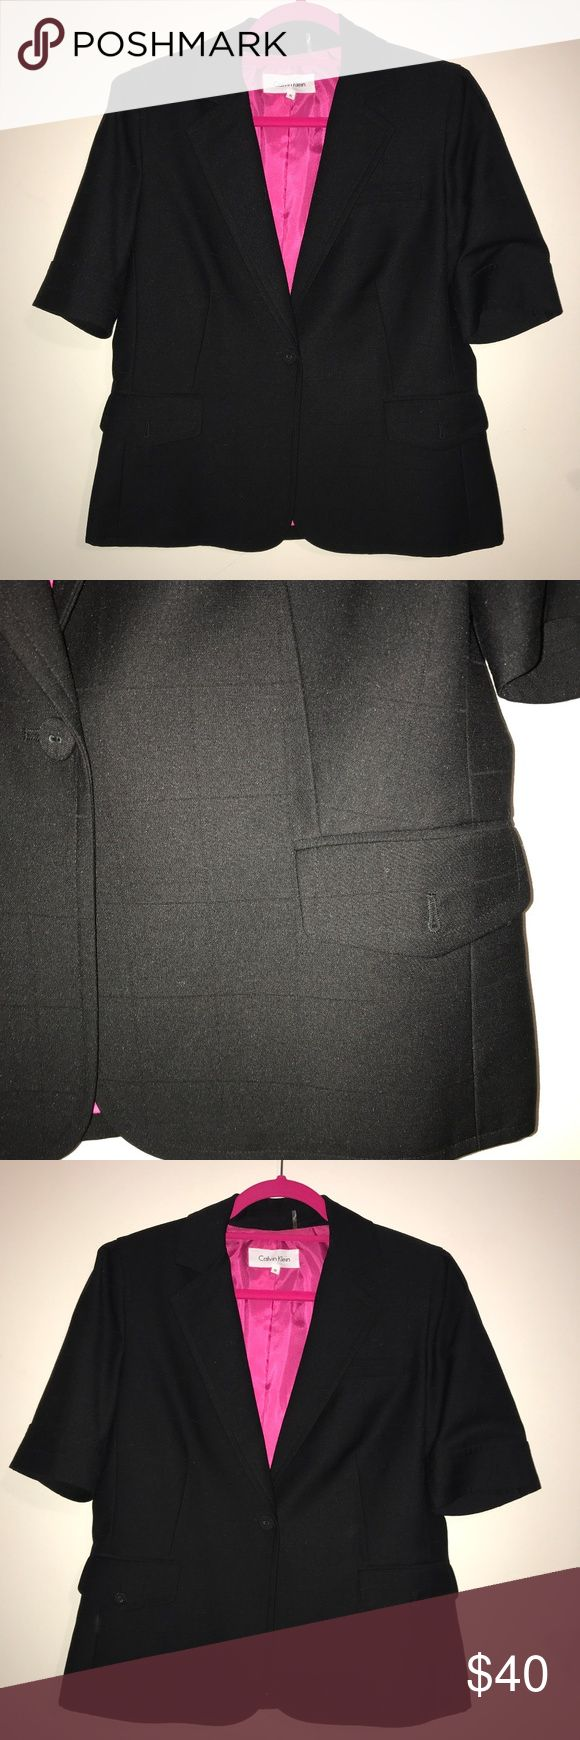 EUC Size 8 Calvin Klein Short Sleeve Black Blazer EUC Size 8 Calvin Klein Short Sleeve Black Blazer with hot pink lining. Stunning piece for your basic pant or skirt suits, especially to tailor them for summer. Snag this beauty while you can! One button closure and button front pockets. See photos for details. Calvin Klein Jackets & Coats Blazers